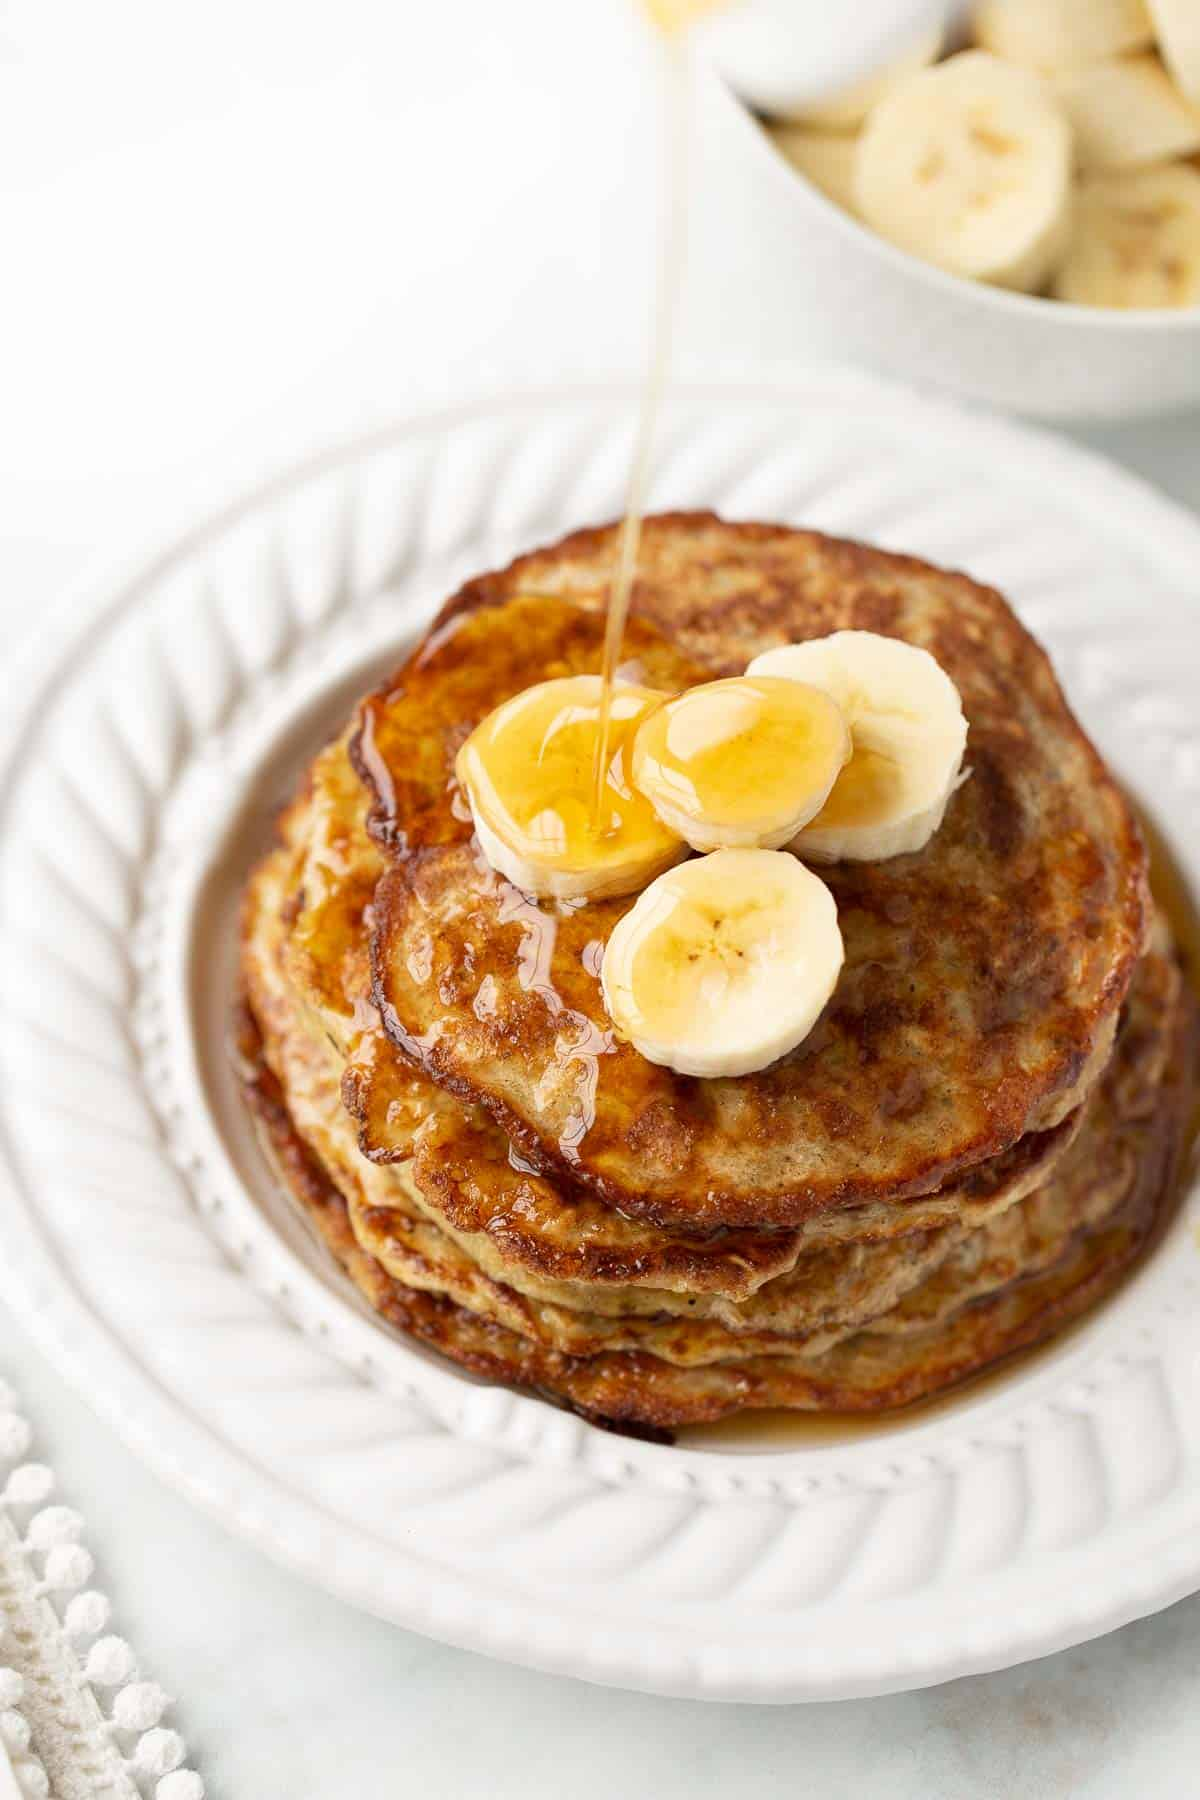 syrup being poured on banana pancakes